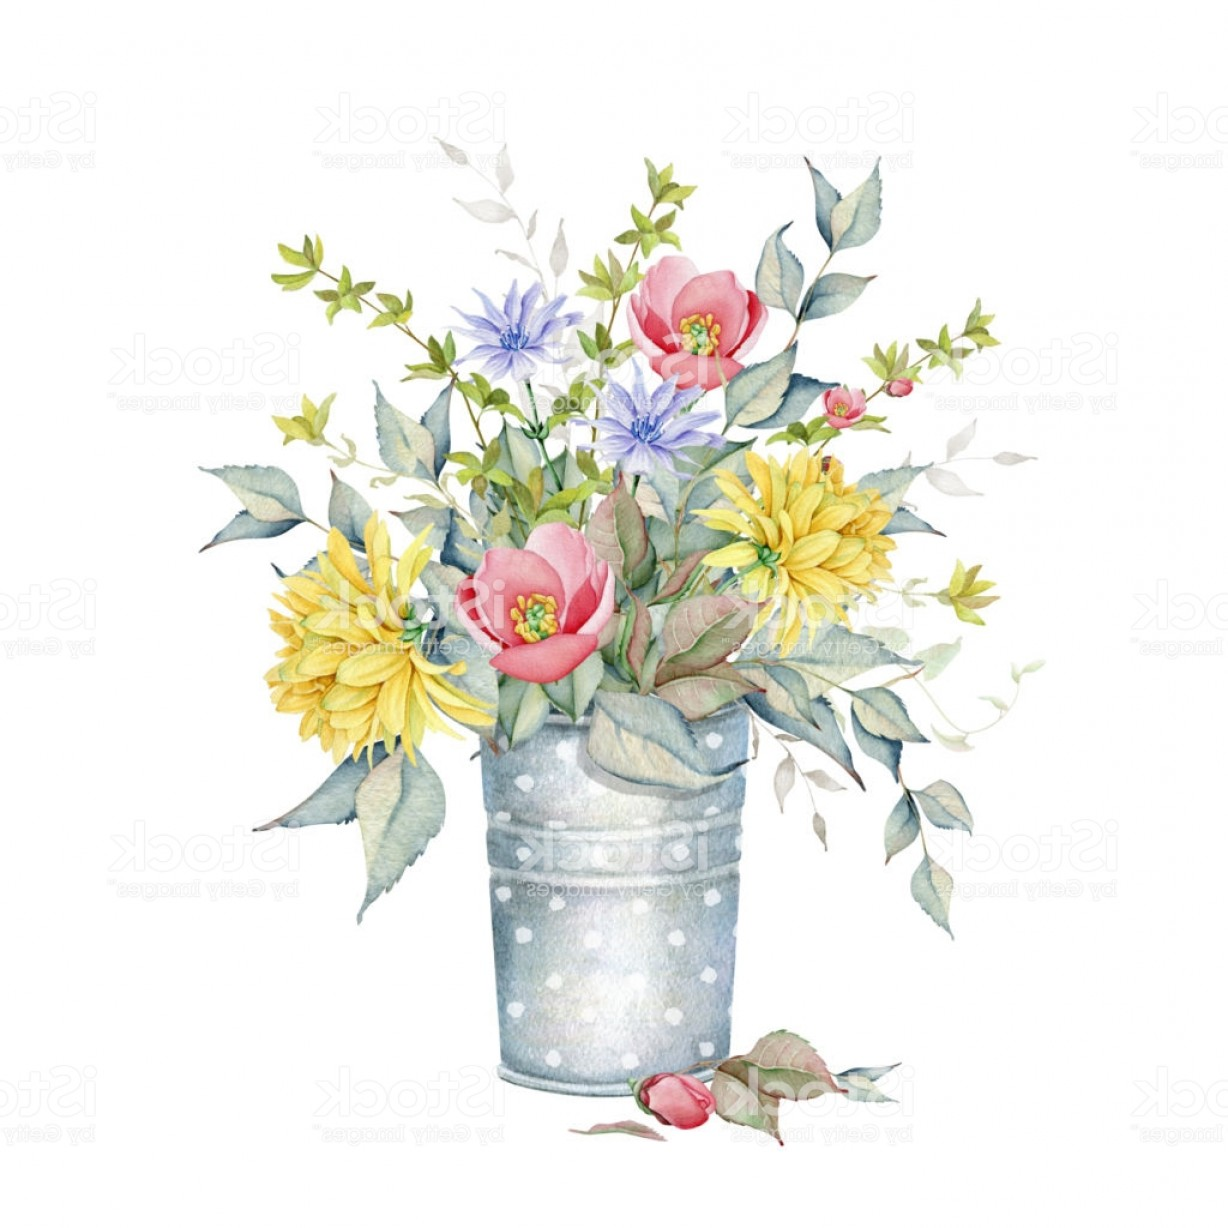 Vector Art Flowers In Vace: Watercolor Floral Bouquet In Vase Gm